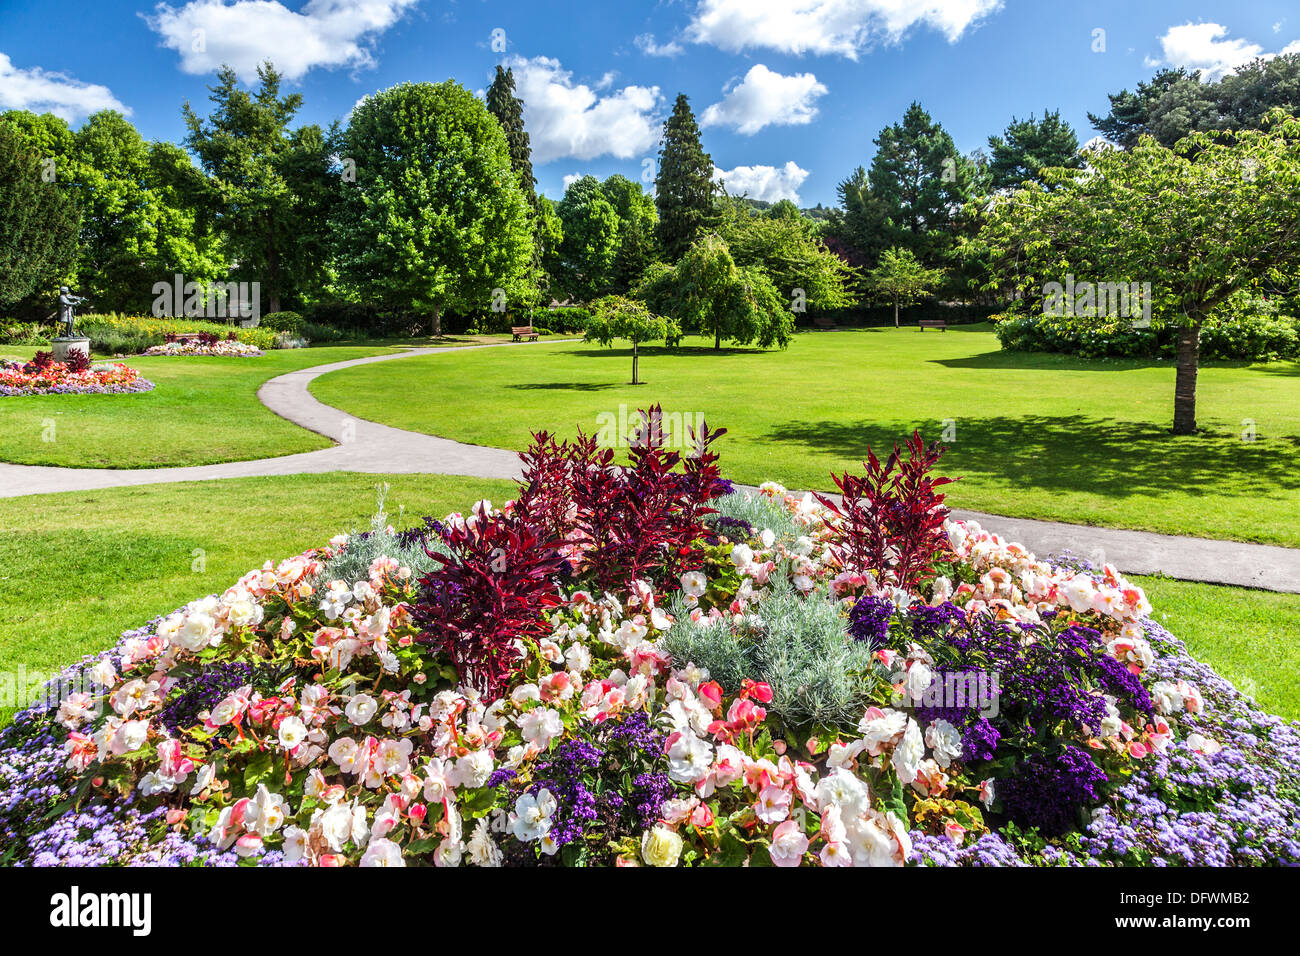 View of the Parade Gardens in Bath on a sunny summer's day. - Stock Image